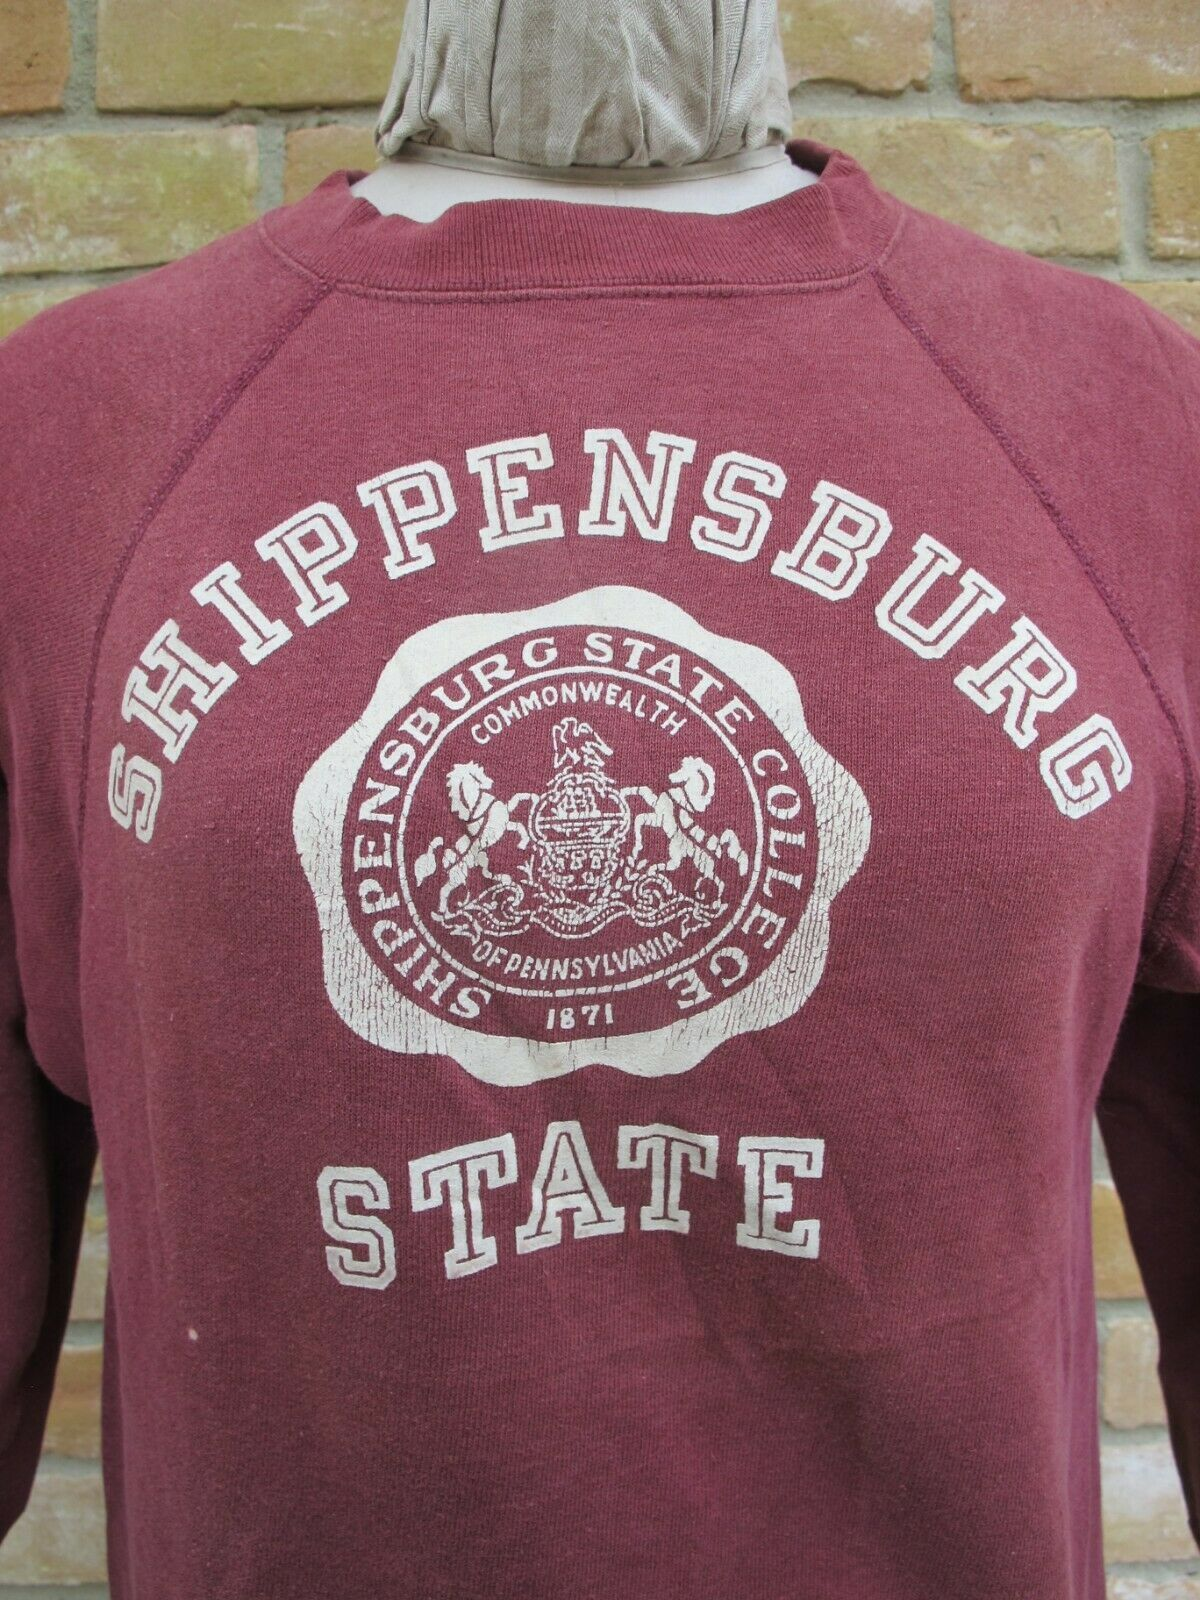 Goal Label Vintage University Shippensburg Runner Champion College HIeE9WD2Y